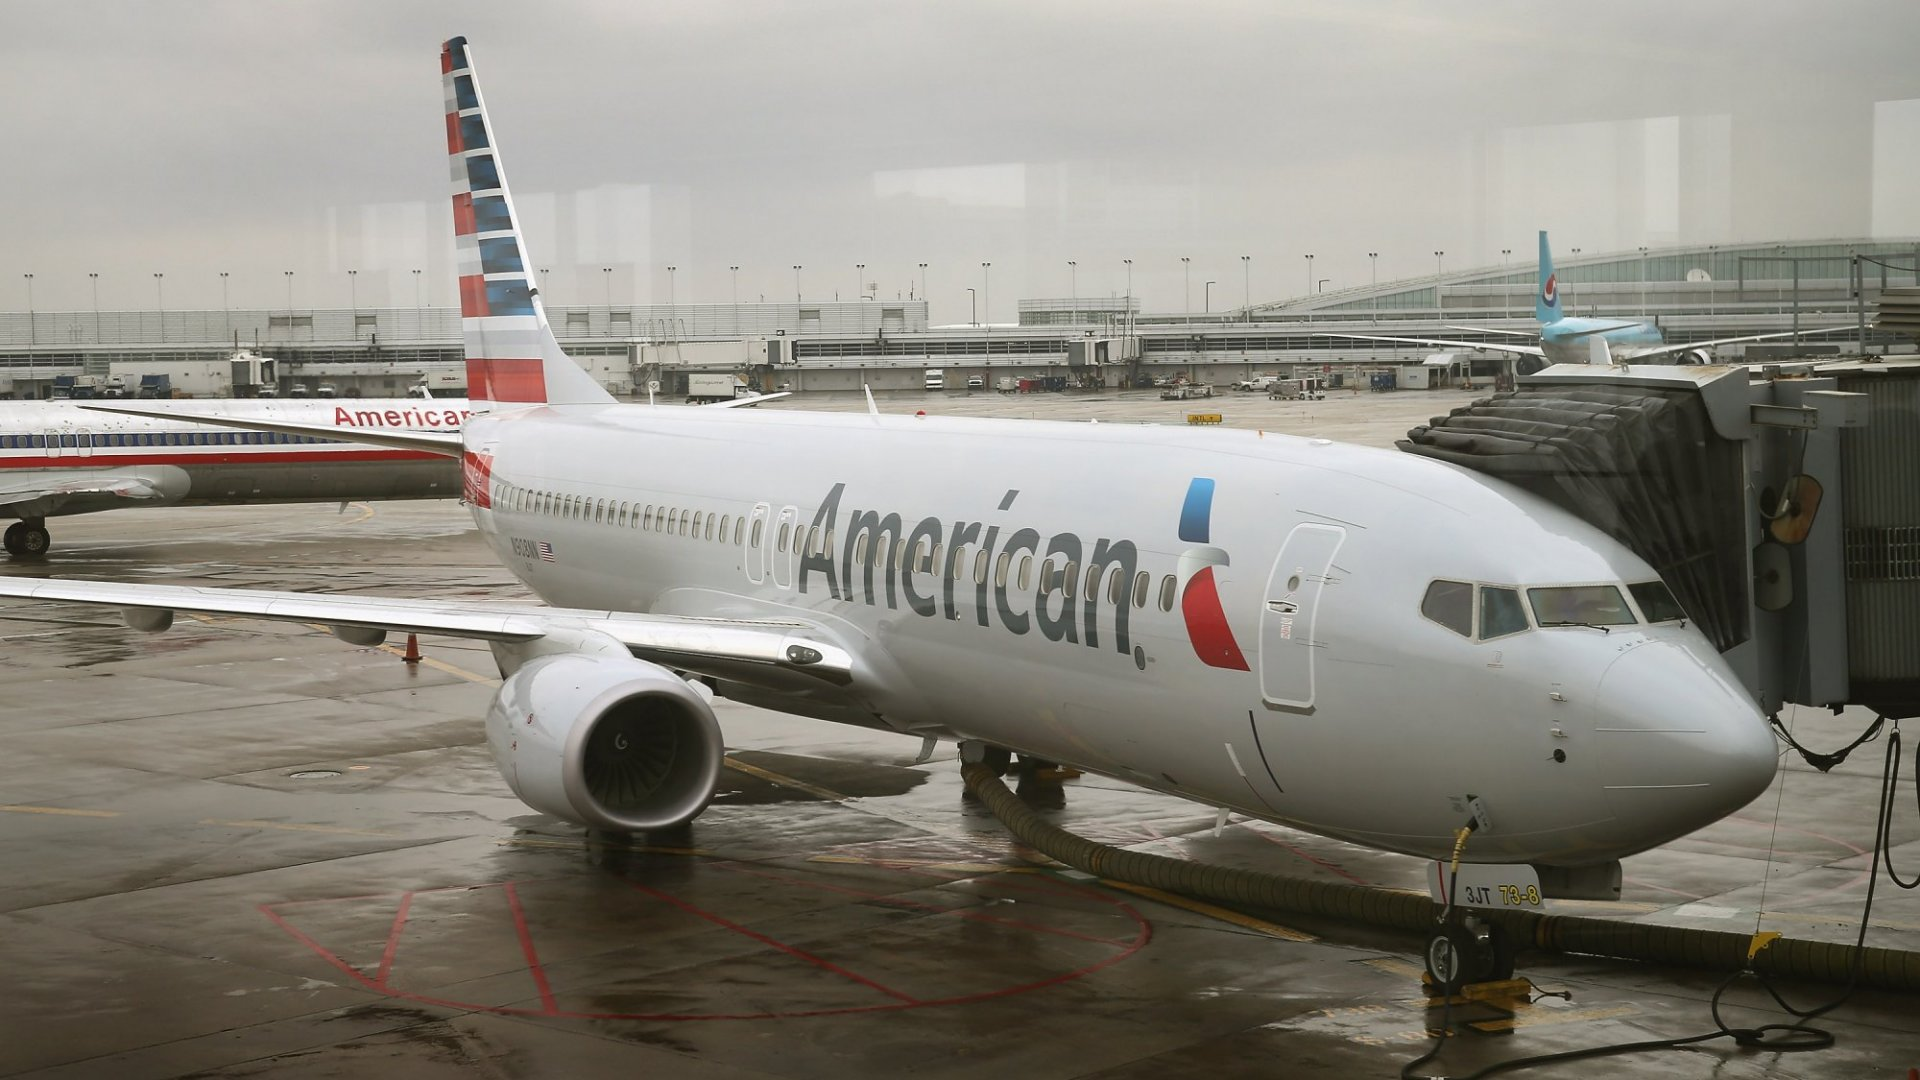 American Airlines Considers This Great Customer Service (Which Tells You All You Need to Know)